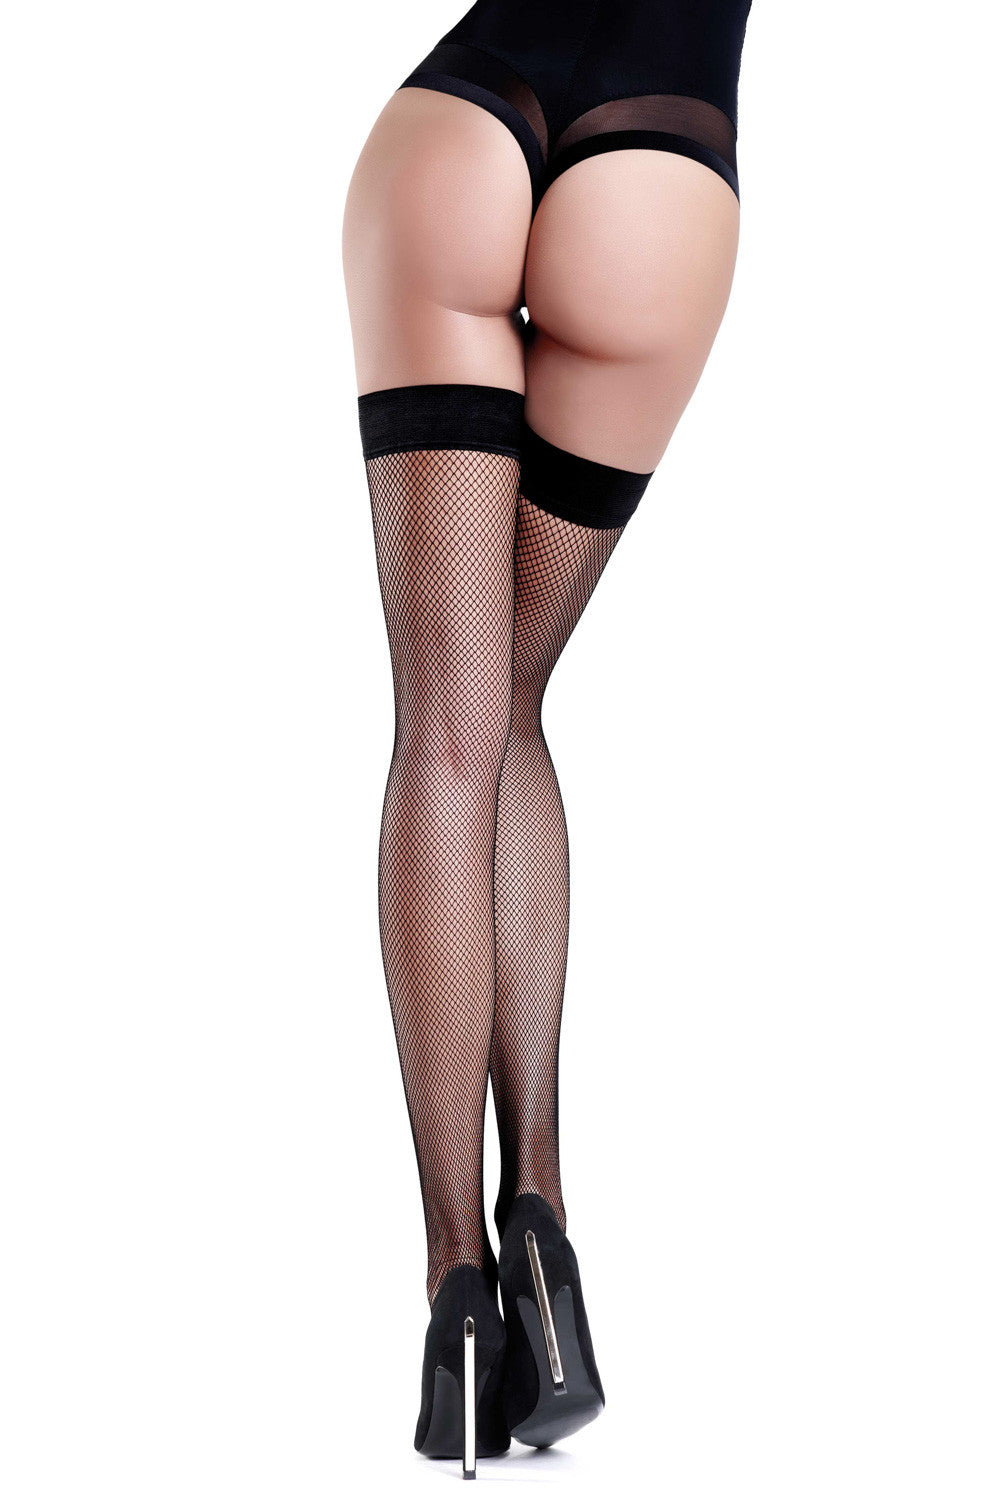 Oroblu Tricot Fishnet Hold Ups - Mayfair Stockings